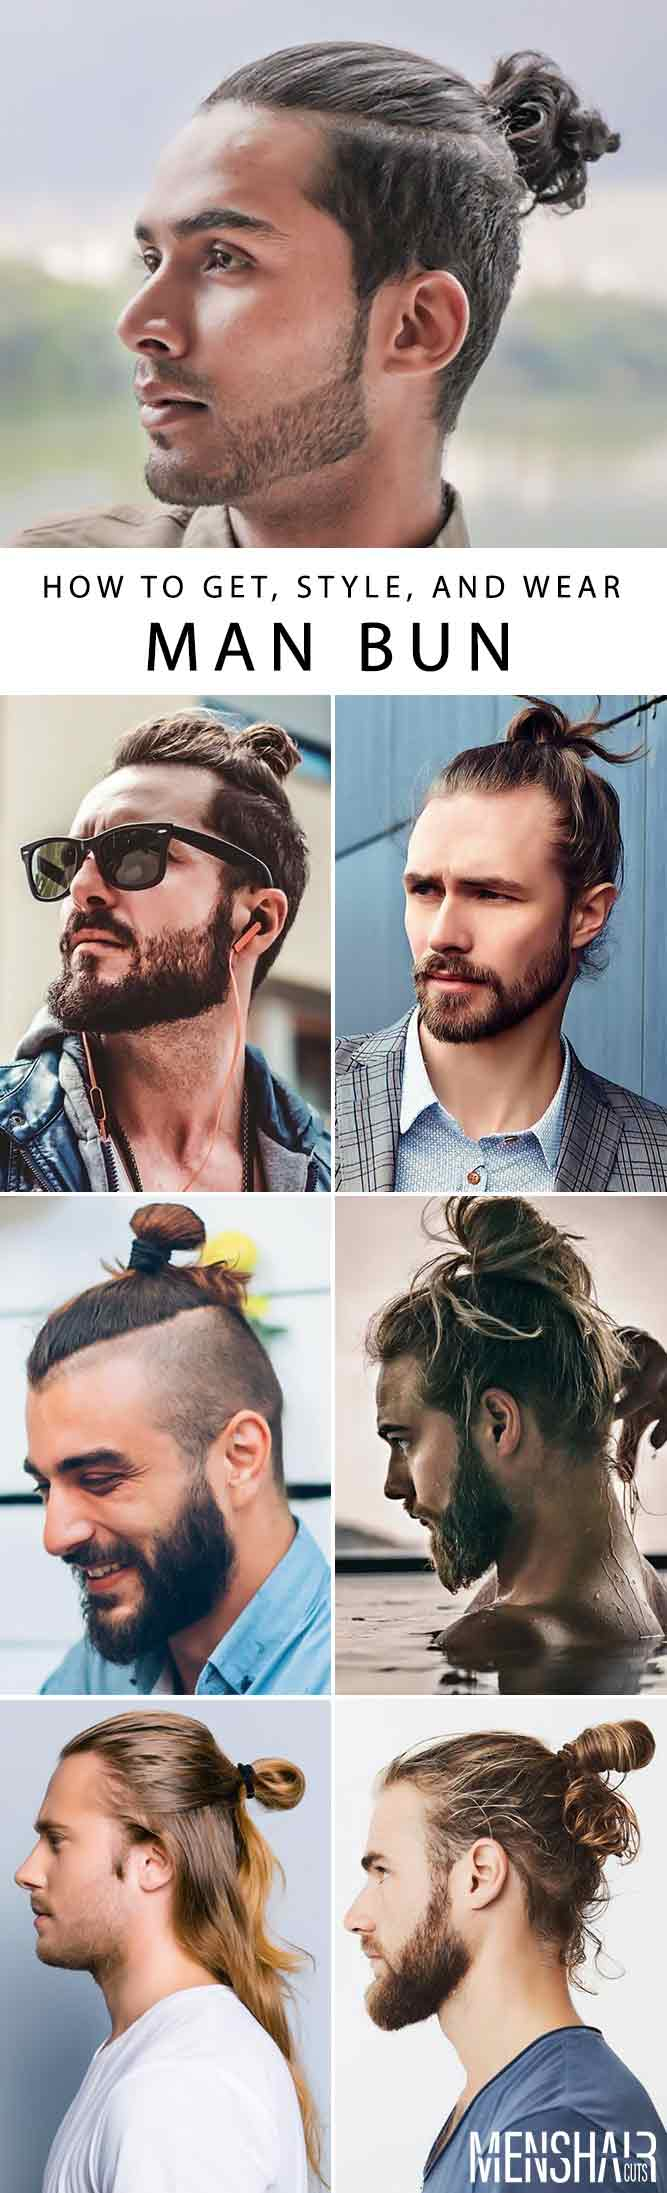 Creative Men Buns Hairstyles #manbun